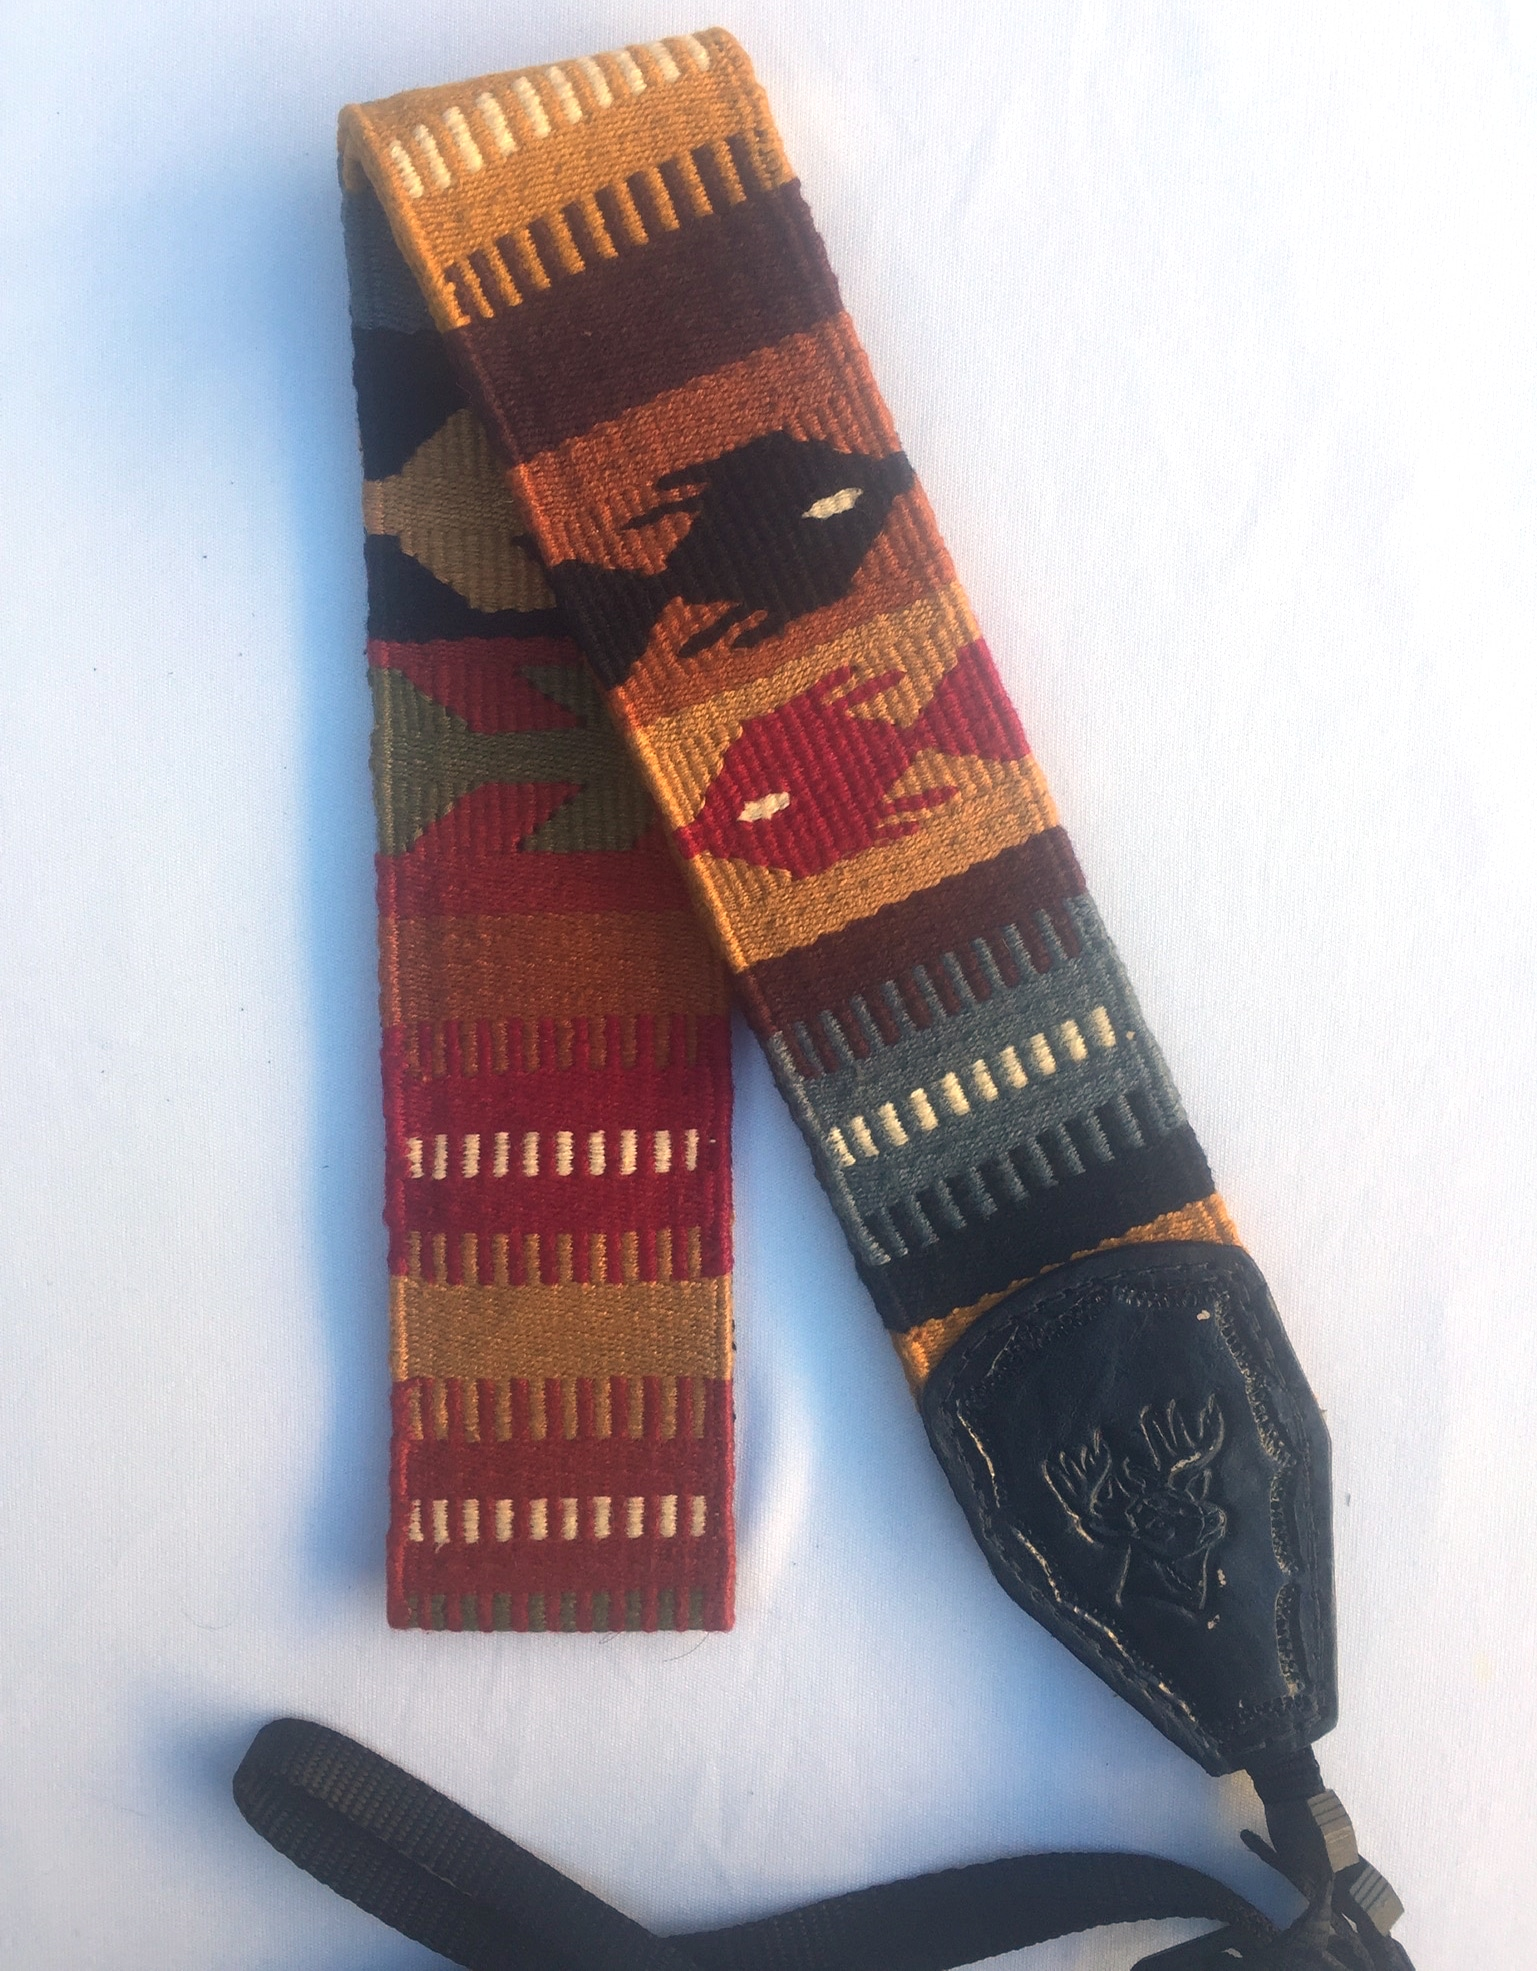 Handwoven Cotton and Leather Camera Strap - Earth Tones with Fish and Arrows Pattern